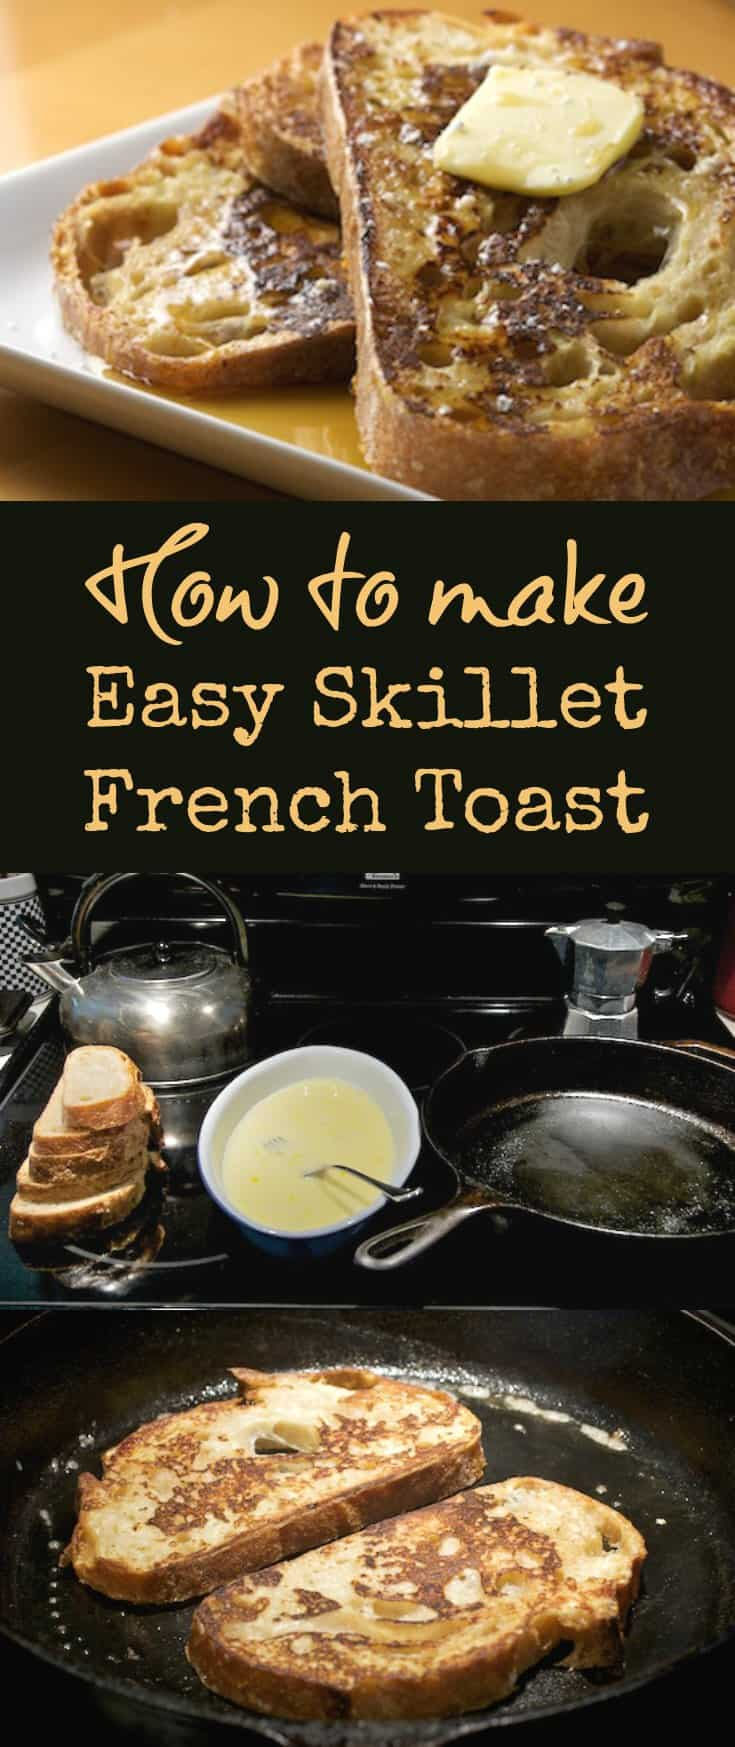 Easy French Toast Recipe | pinchmysalt.com